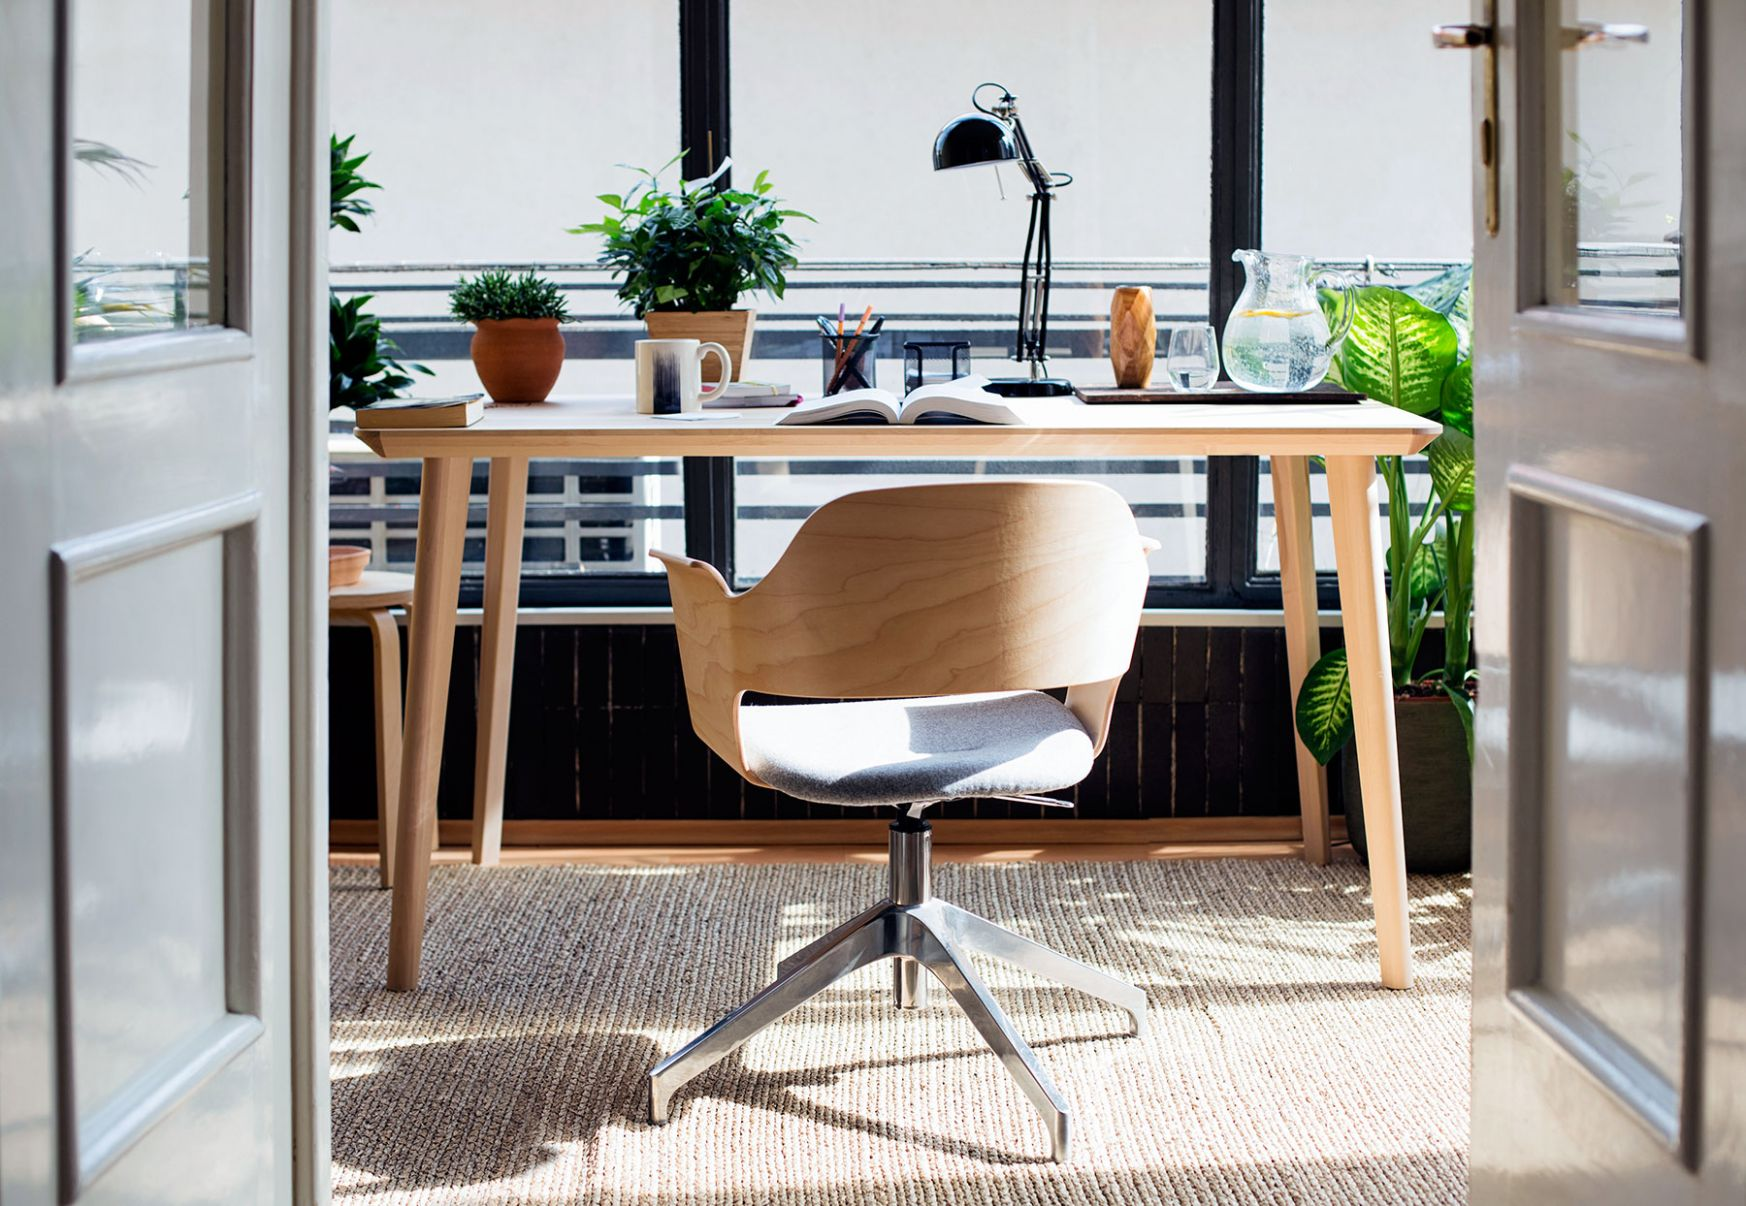 10 Home Office Ideas That Will Make You Want to Work All Day ...